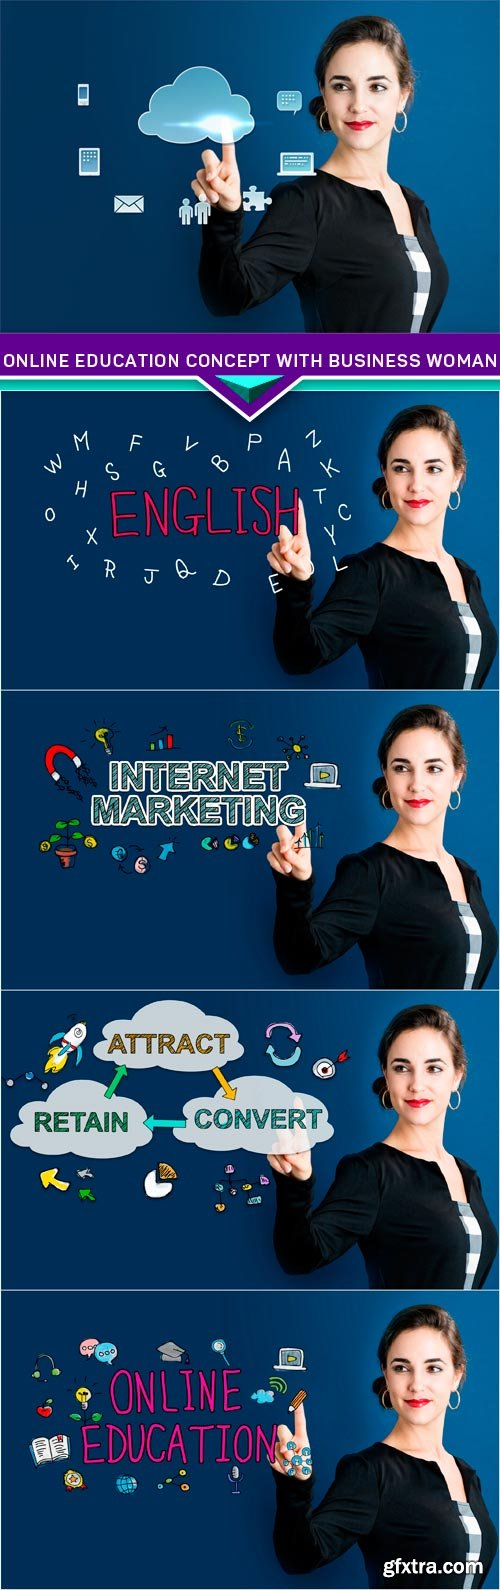 Online Education concept with business woman 5X JPEG